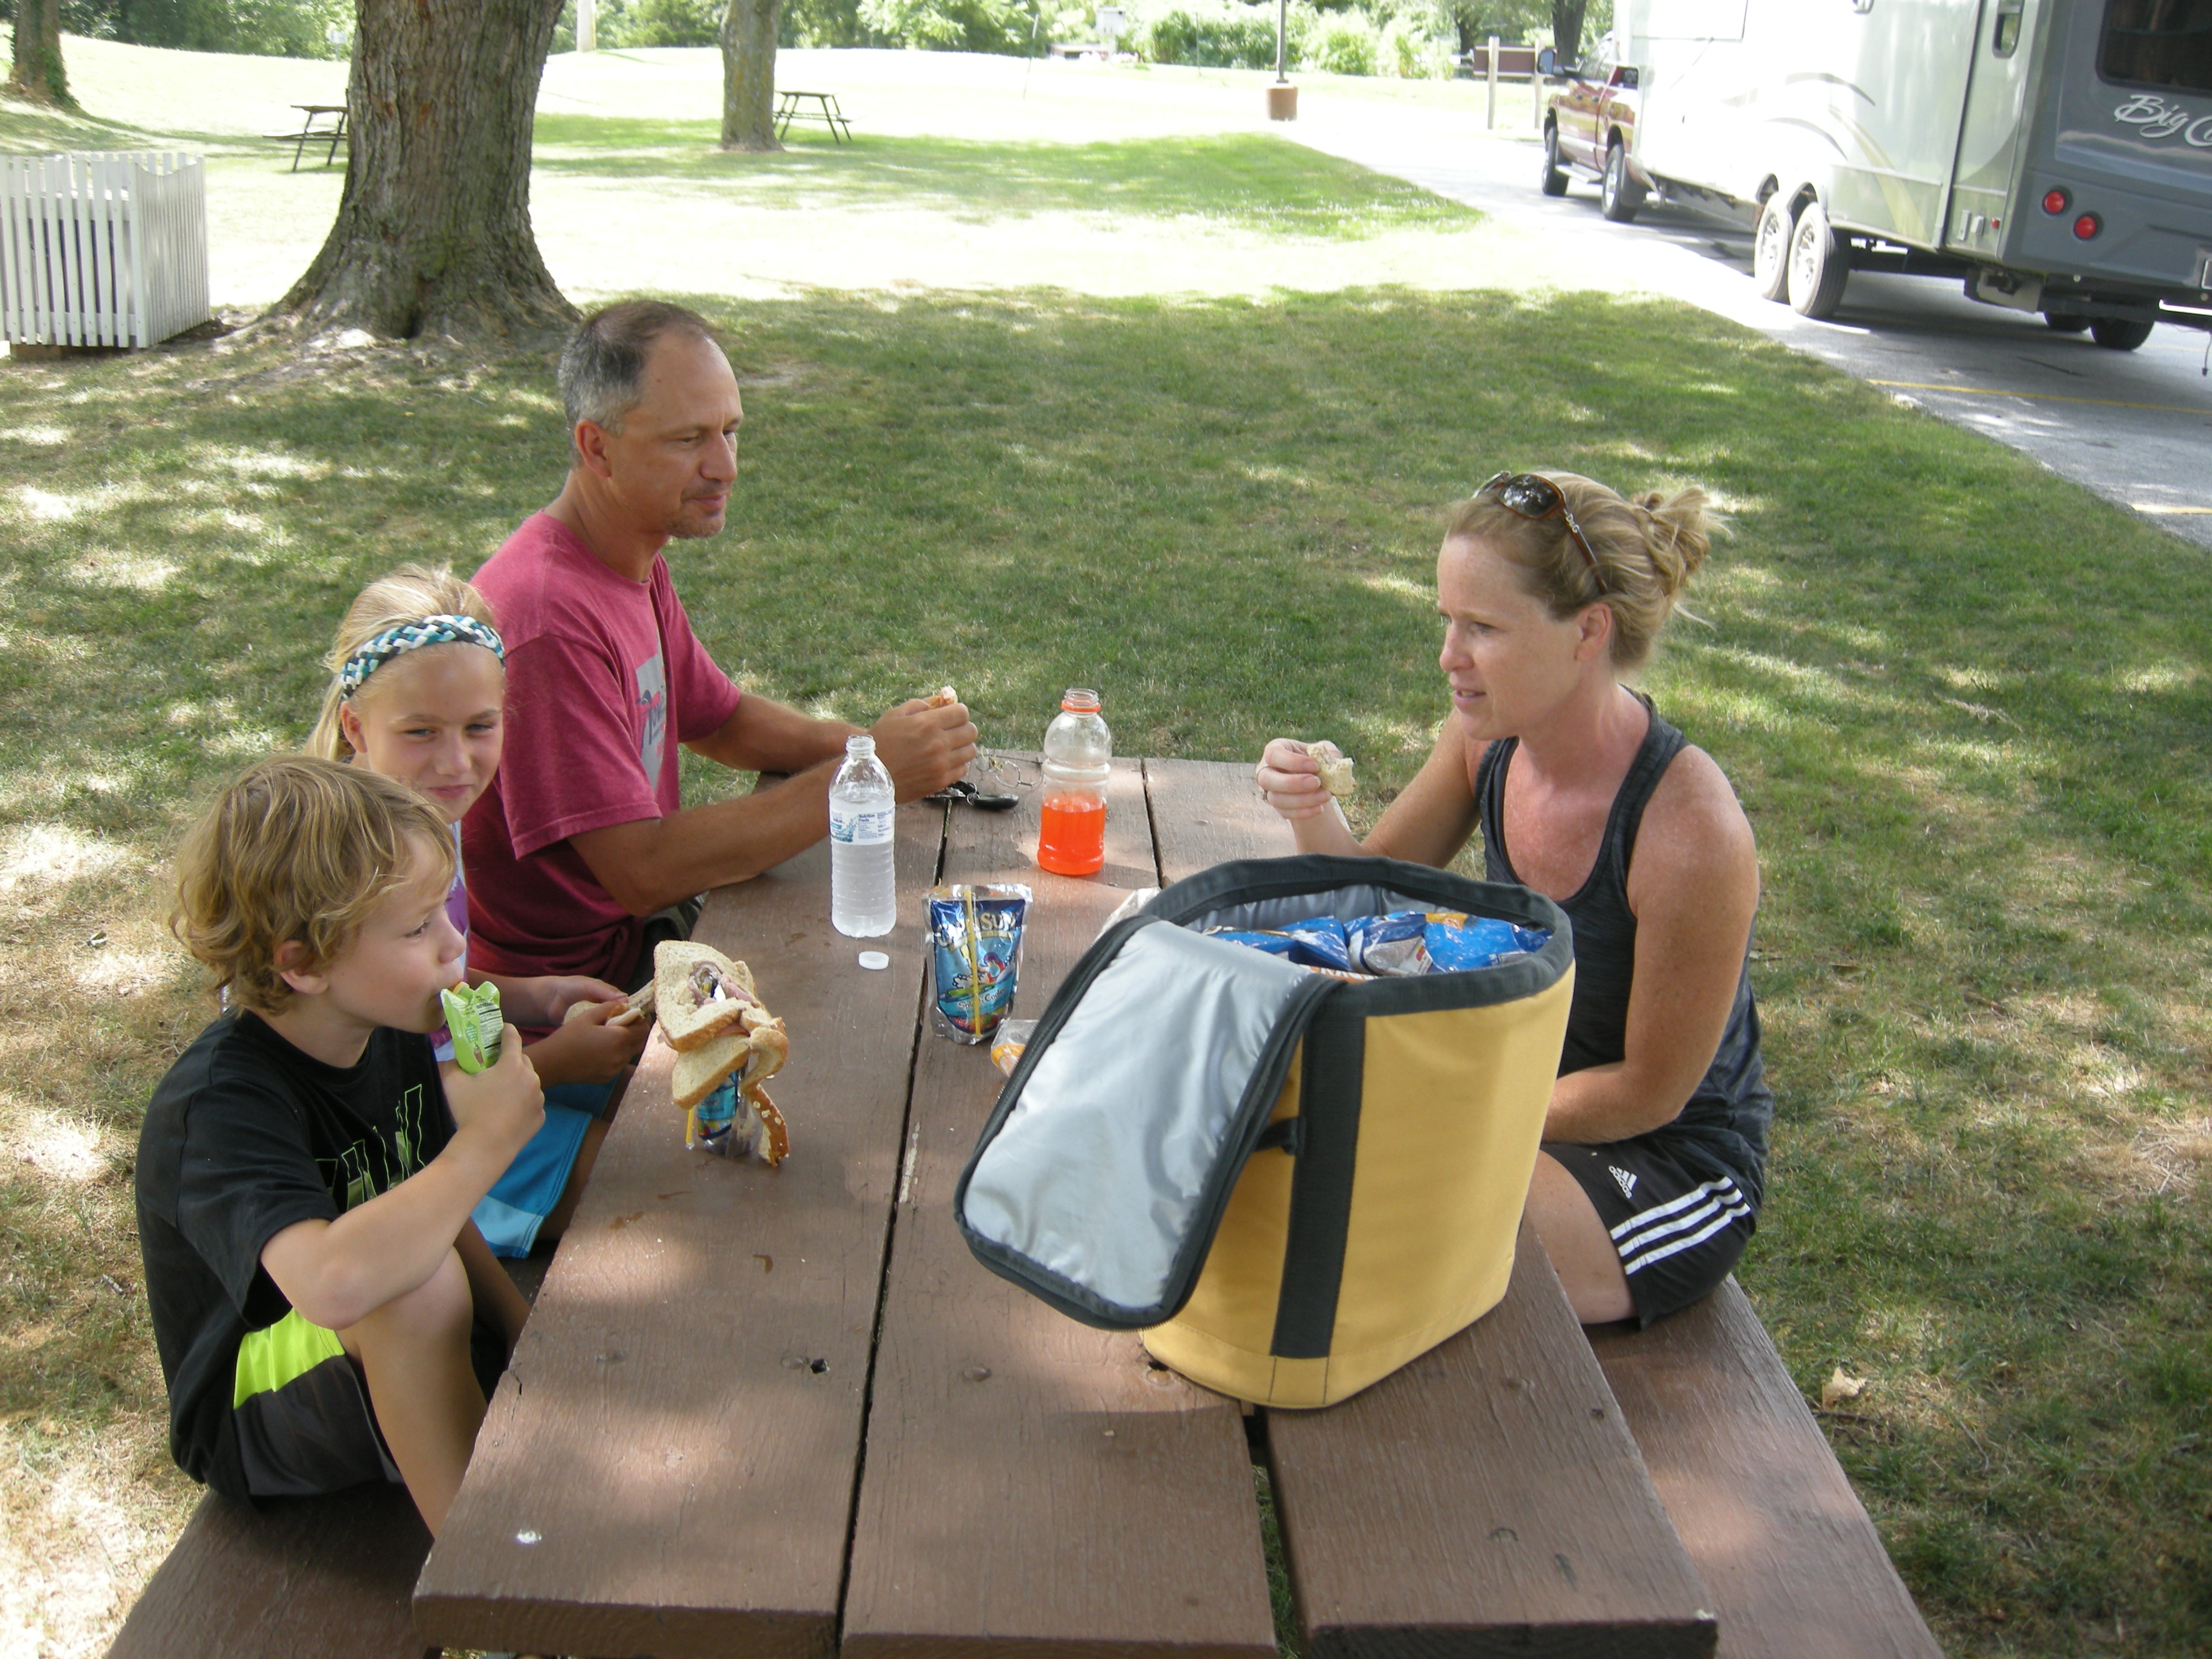 A family enjoys lunch at a picnic table